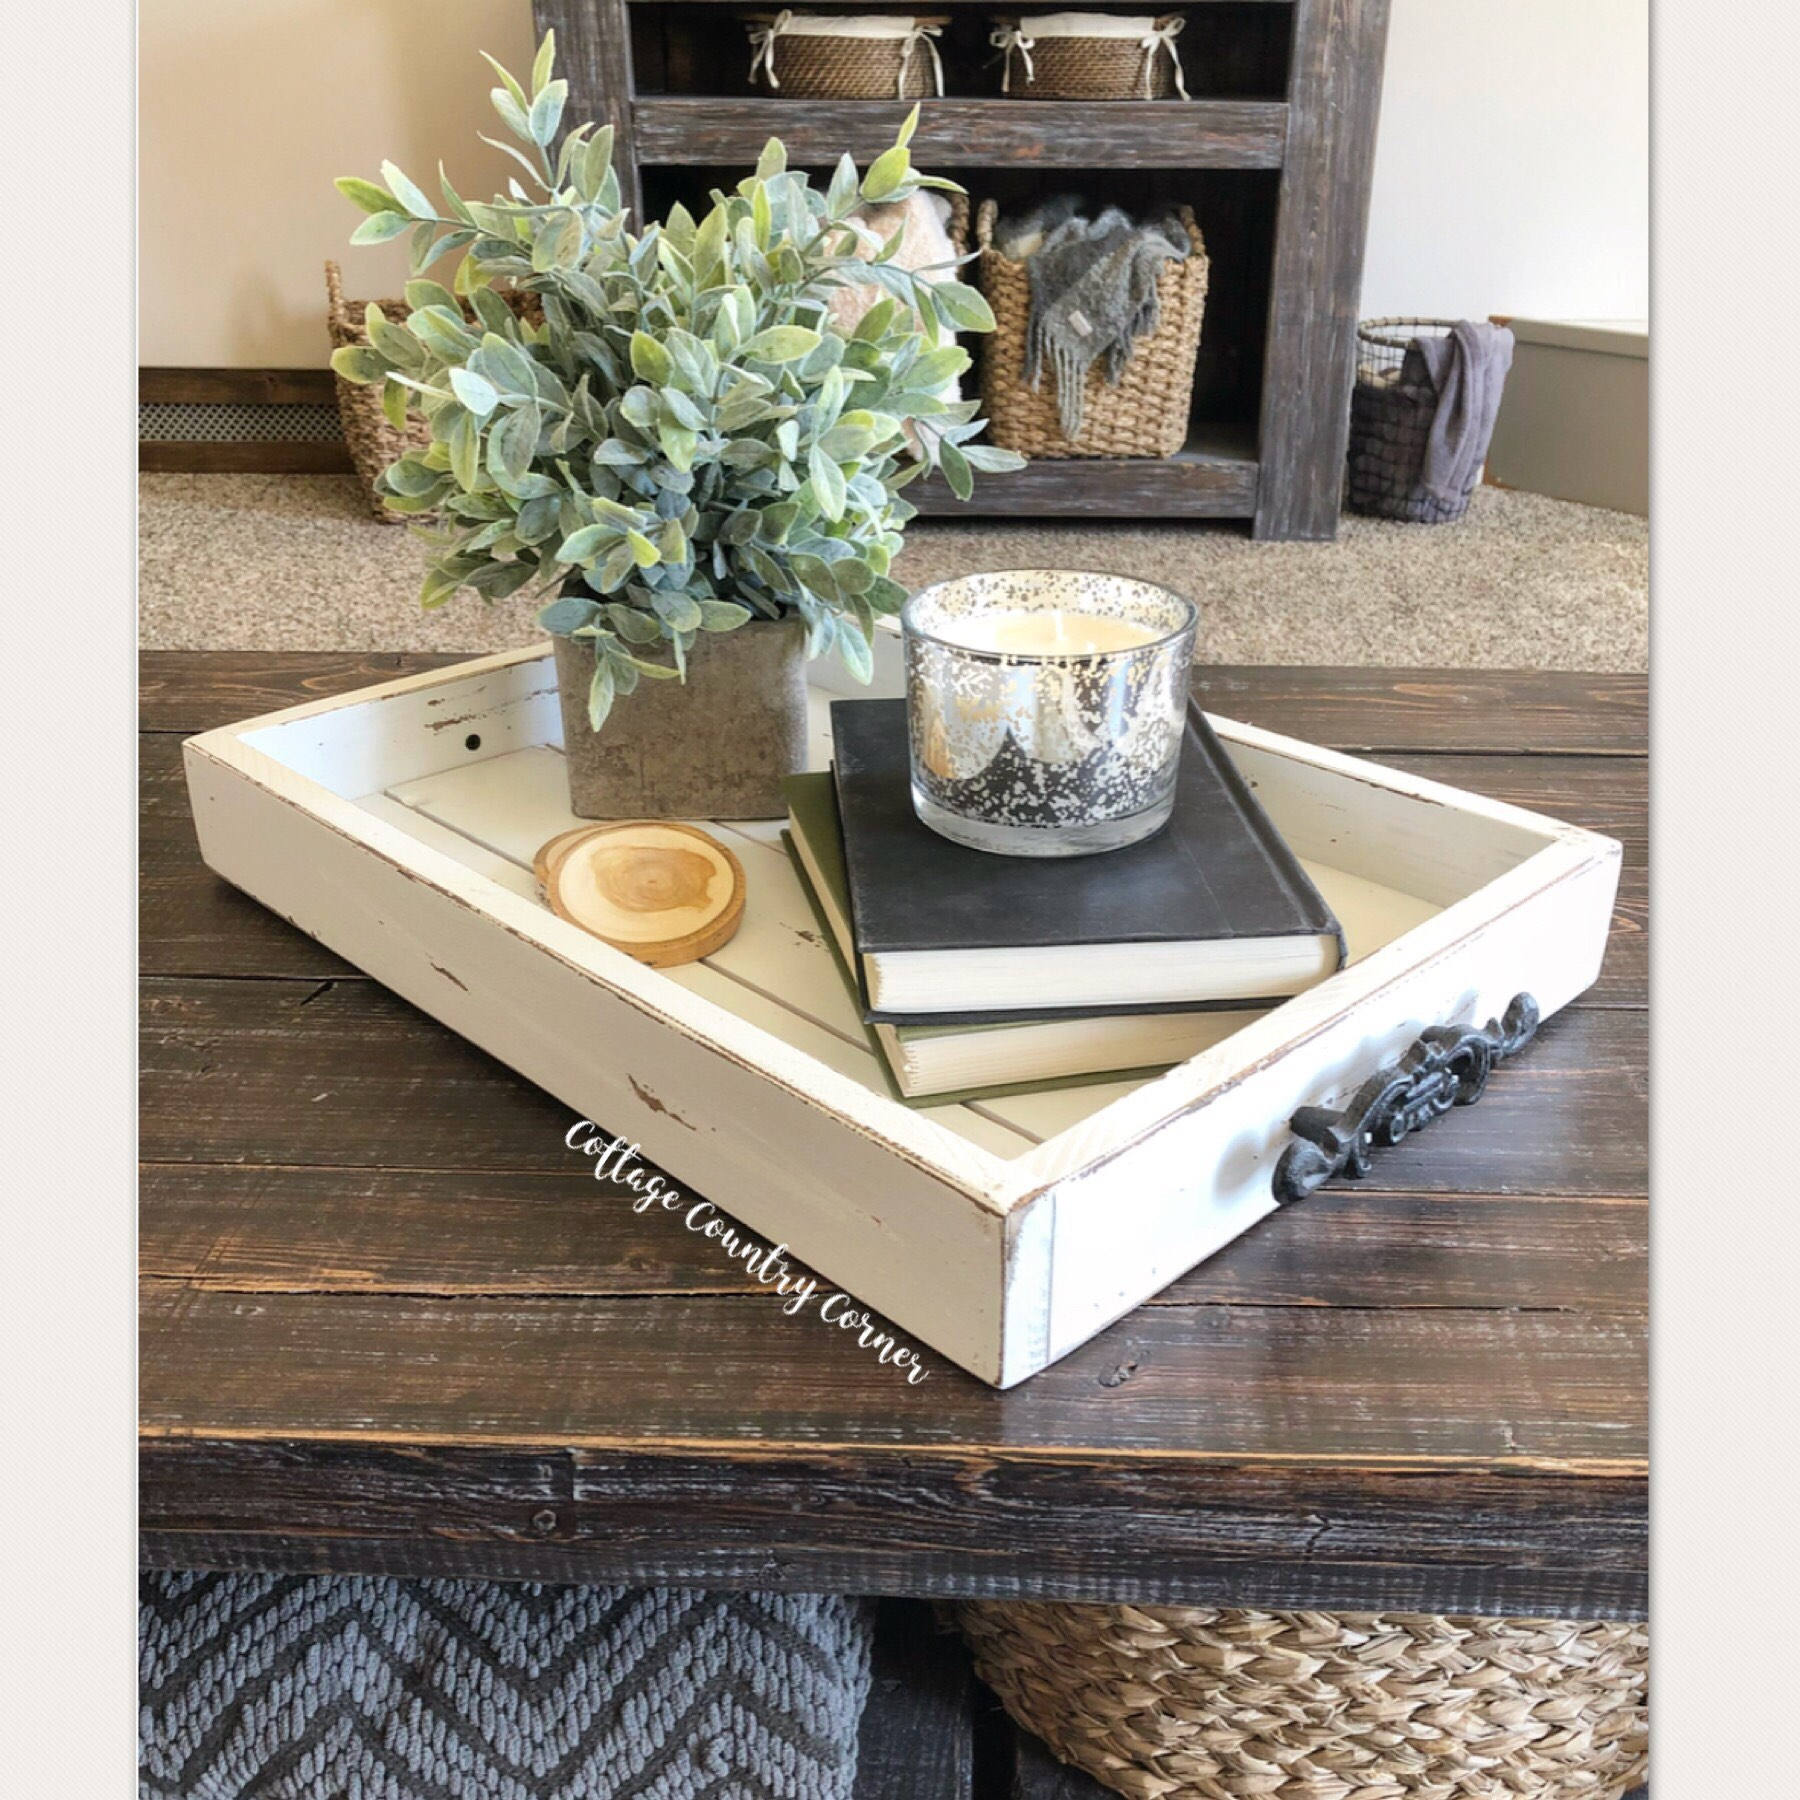 14x20 Wooden Decorative Tray With Metal Handles \u2013 Cottage